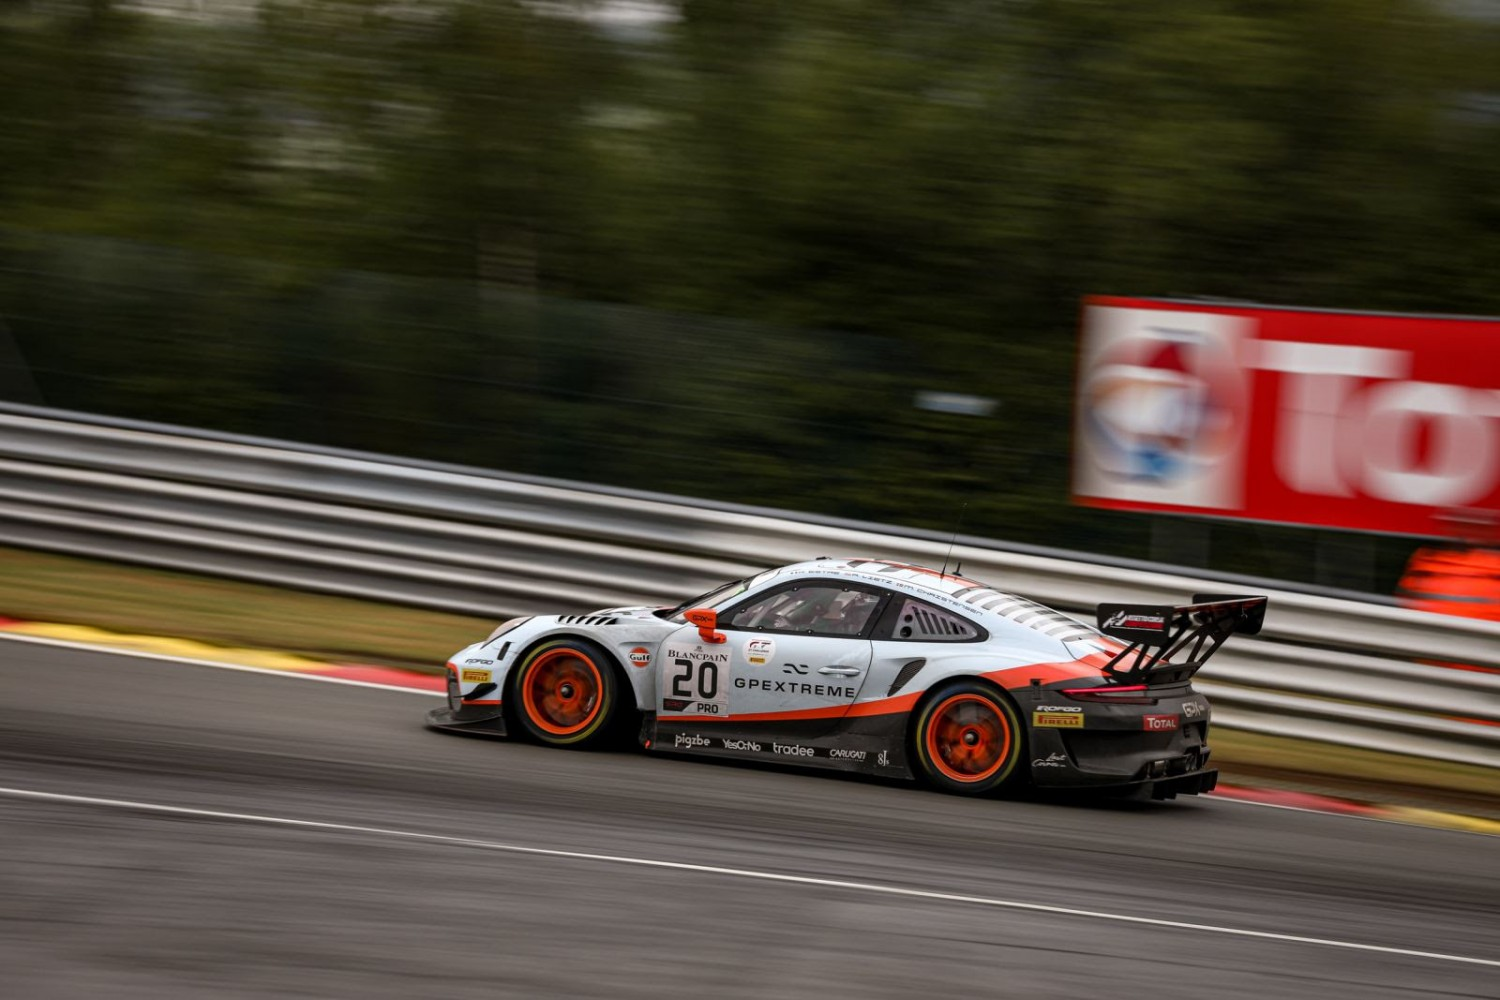 Porsche wins battle of the heavyweights to conquer 2019 Total 24 Hours of Spa